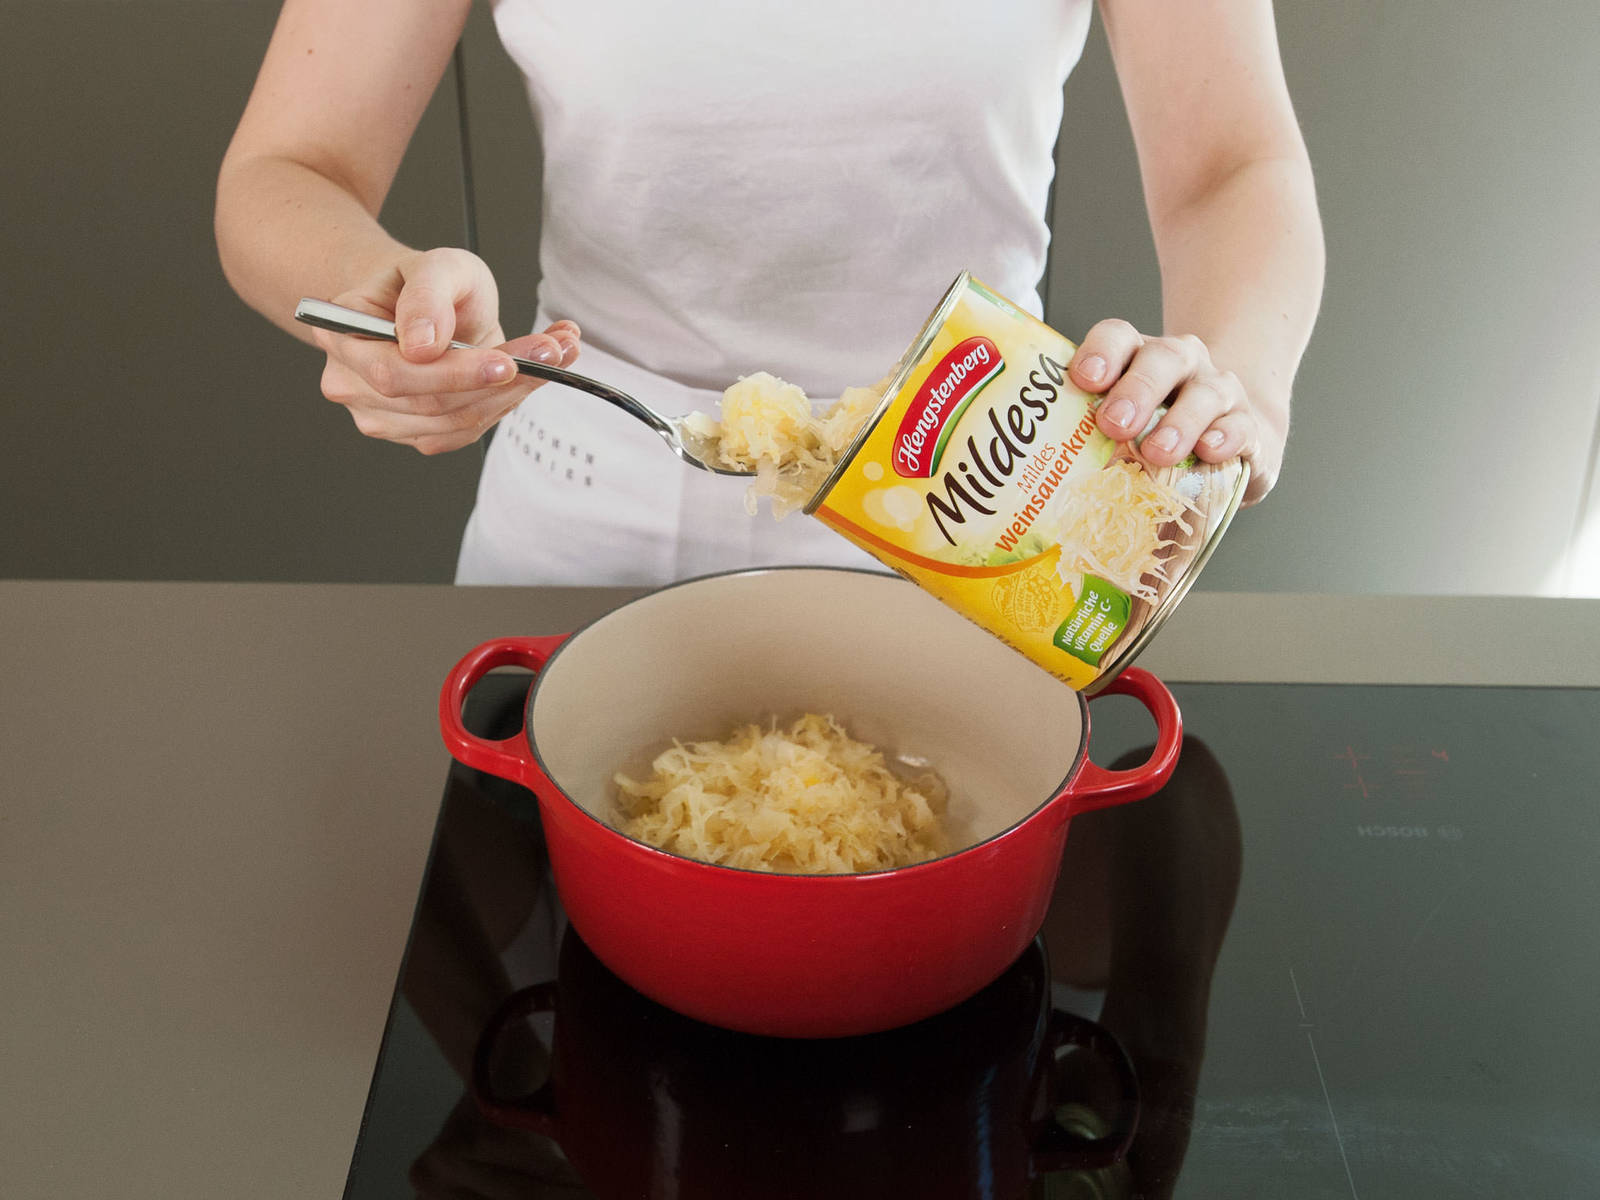 In a large saucepan, heat up sauerkraut over medium heat for approx. 4 – 5 min.